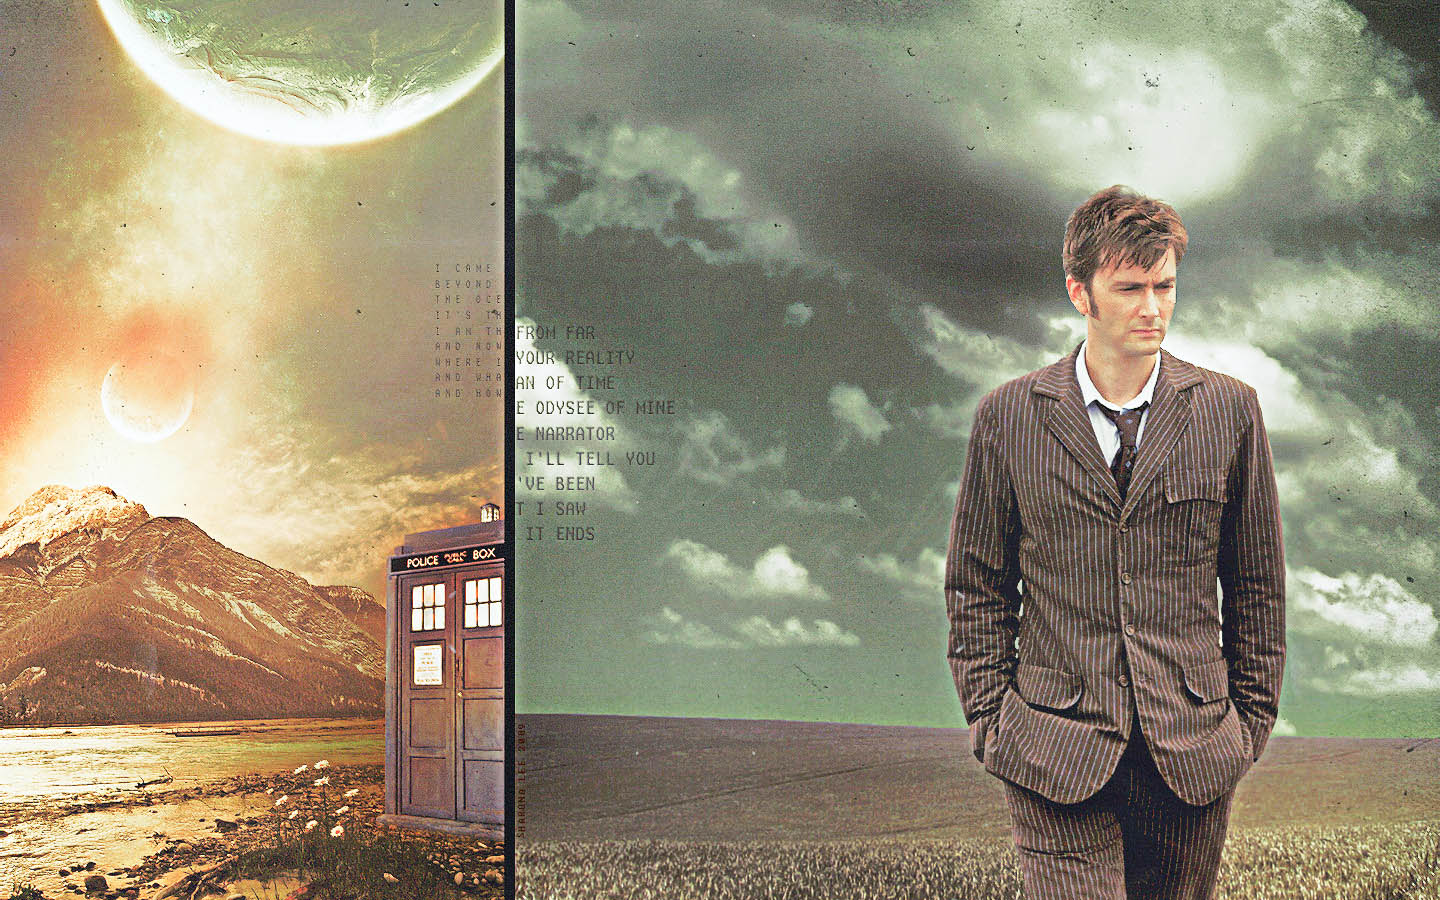 Doctor Who Iphone Wallpaper Doctor Who Tv Show New High Resolution Wallpapers All Hd